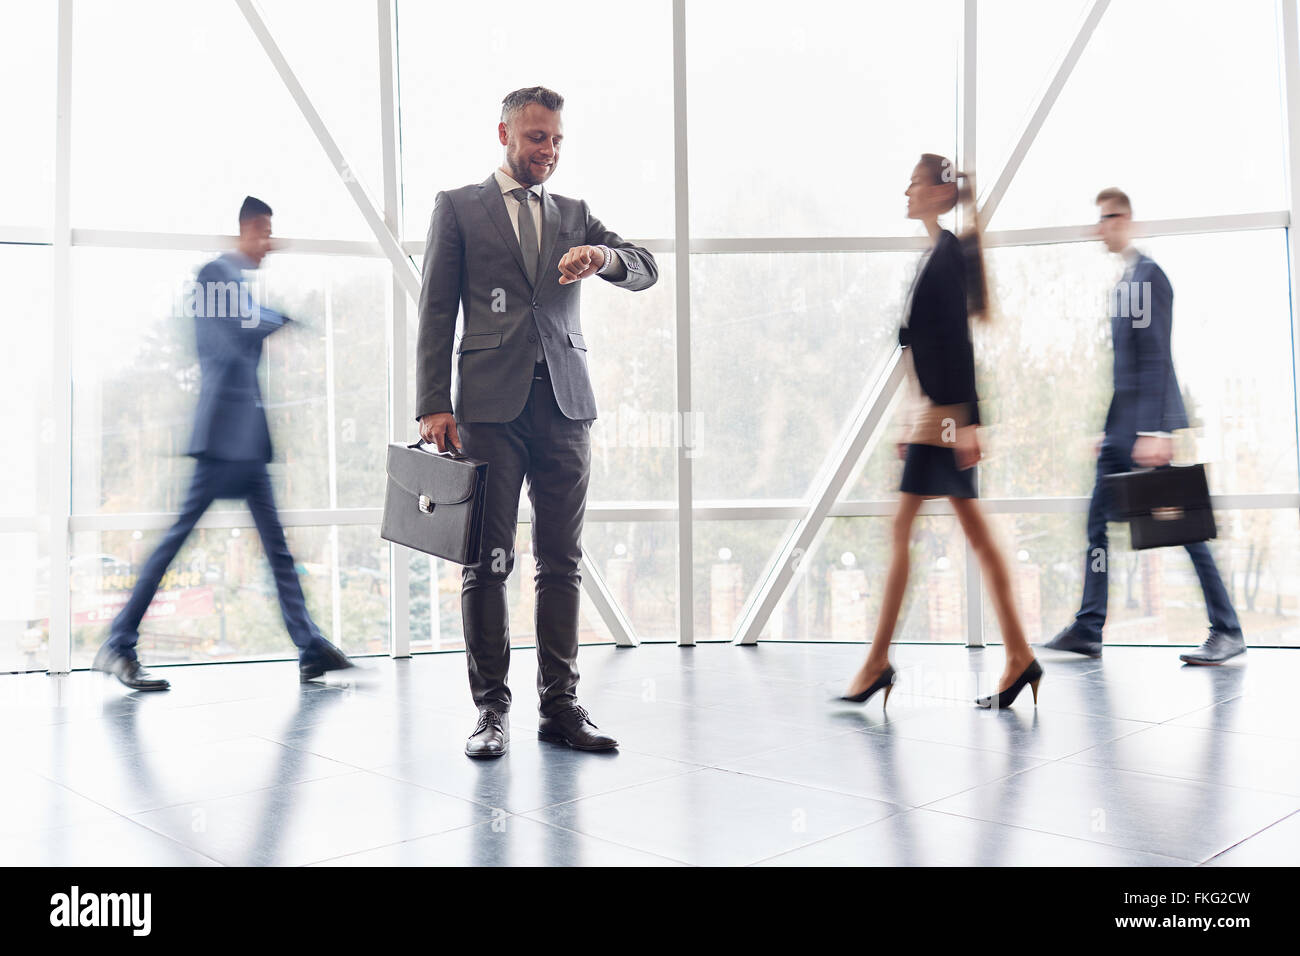 Businessman with suitcase looking at his watch among business people going behind him - Stock Image